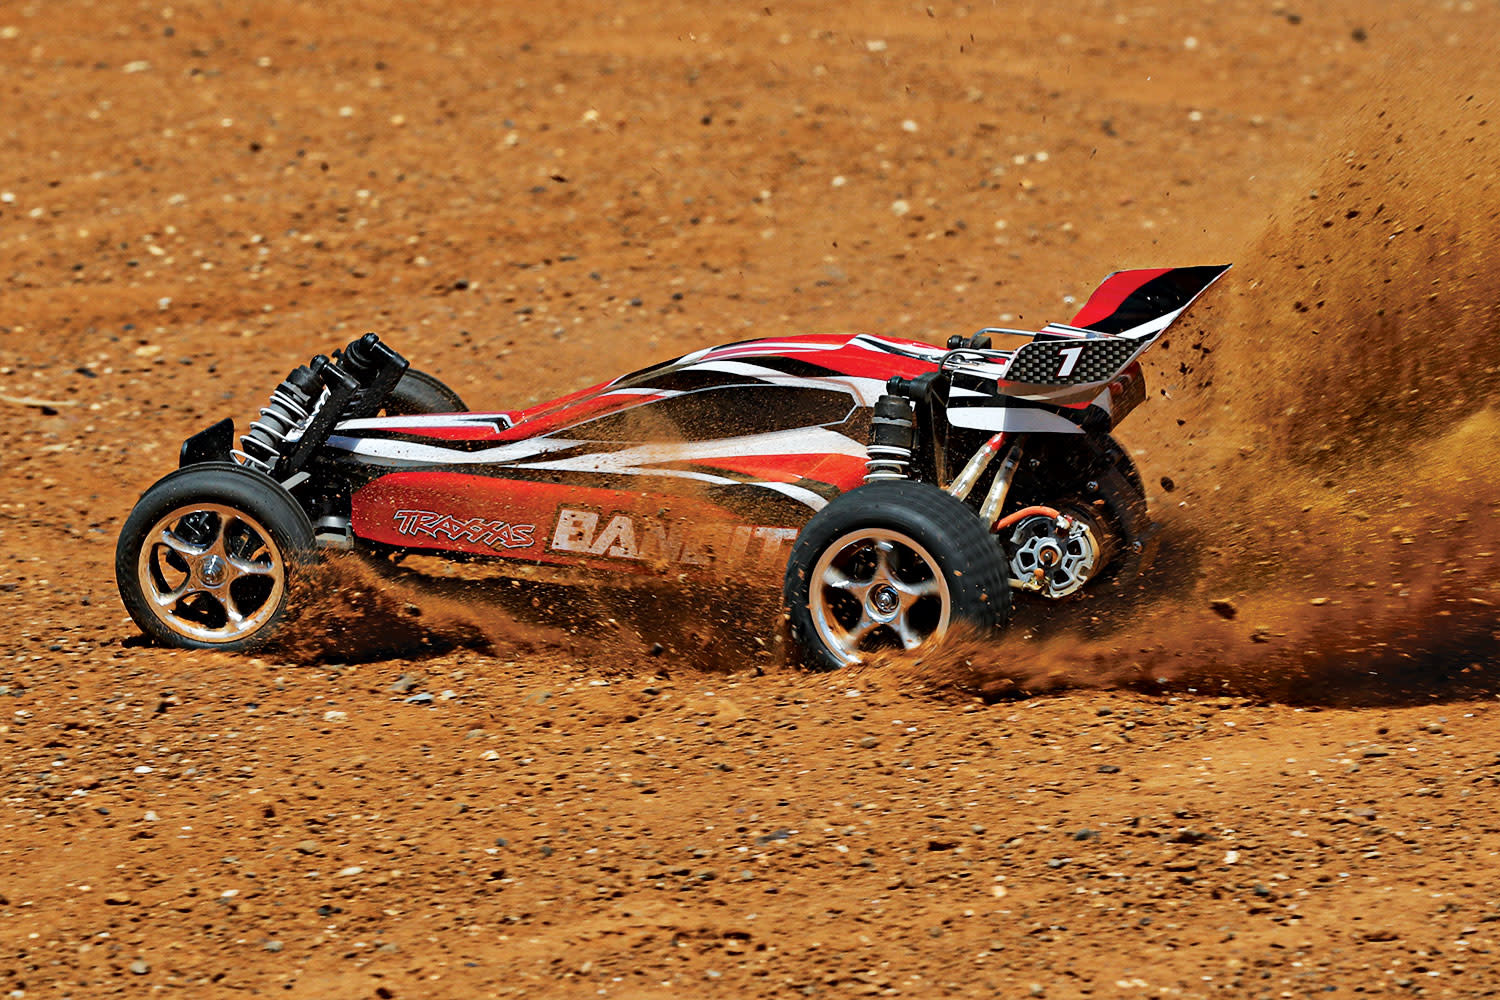 Traxxas Bandit XL-5 TQ (incl. battery/charger), Red, TRX24054-1R-3